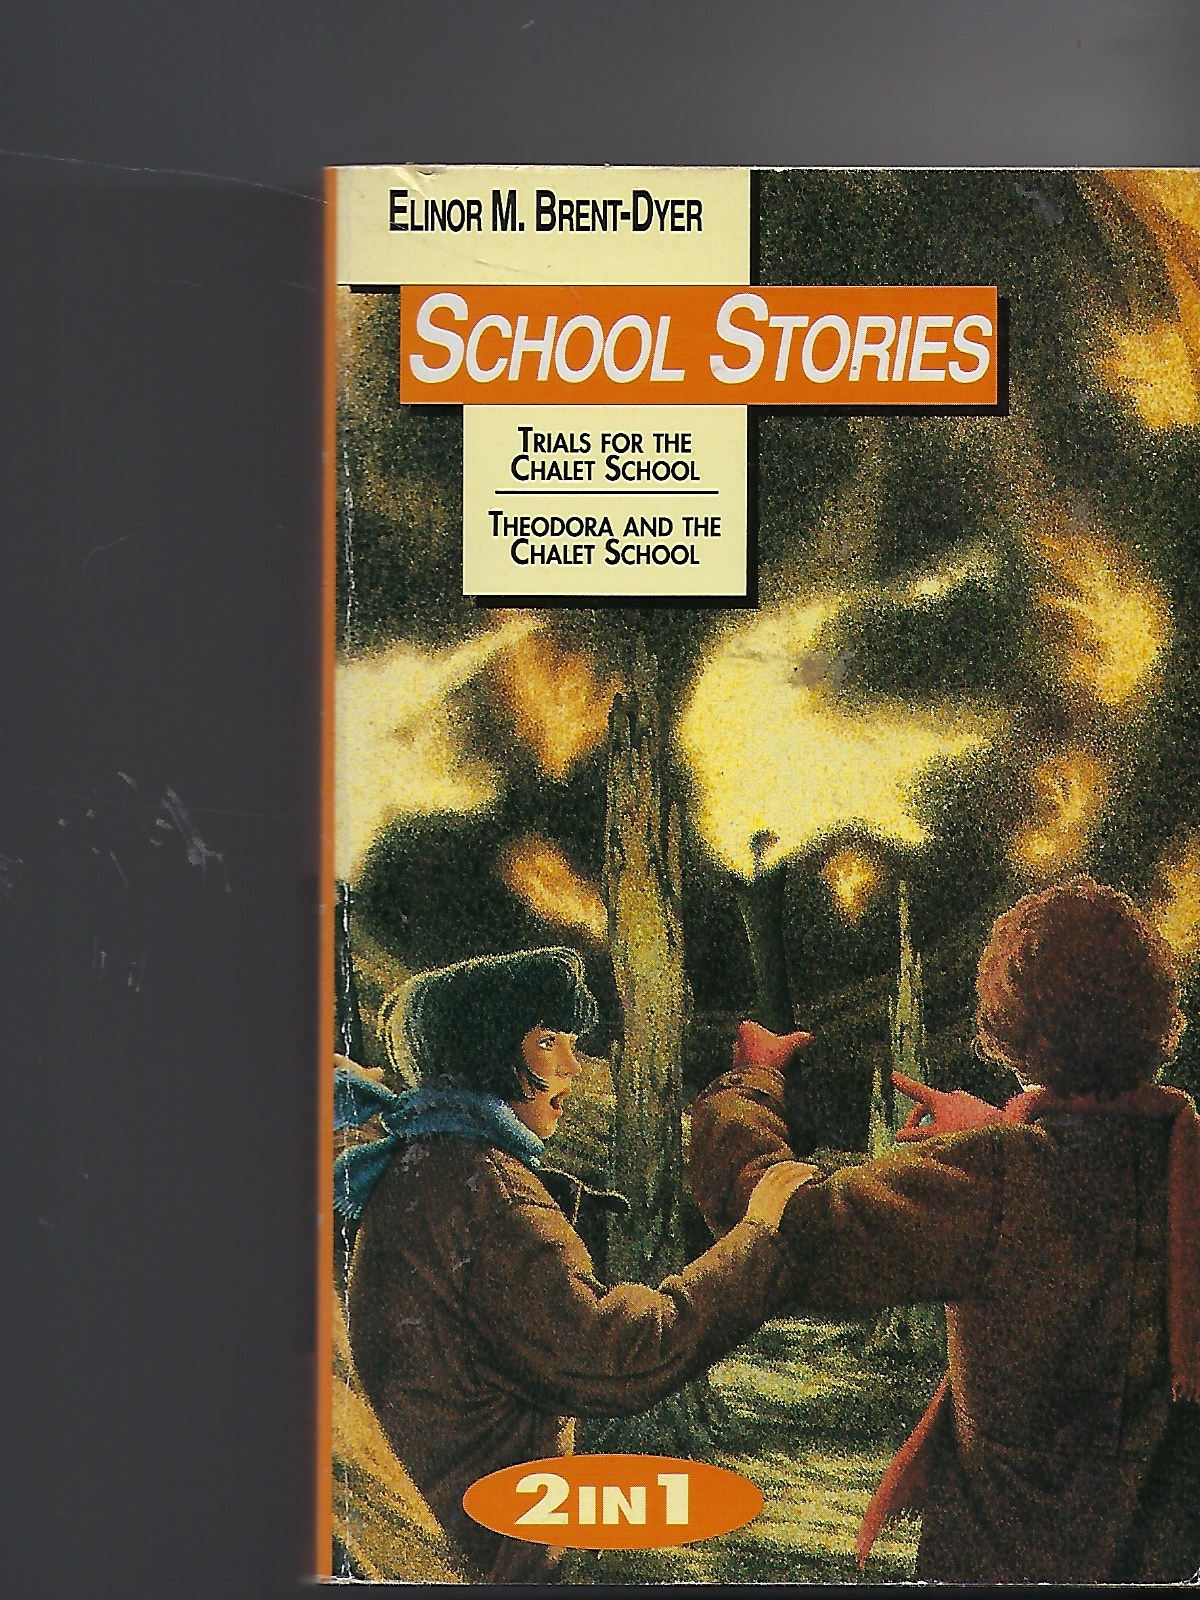 Image for School Stories 2 in 1: Trials for the Chalet School & Theodora and the Chalet School: